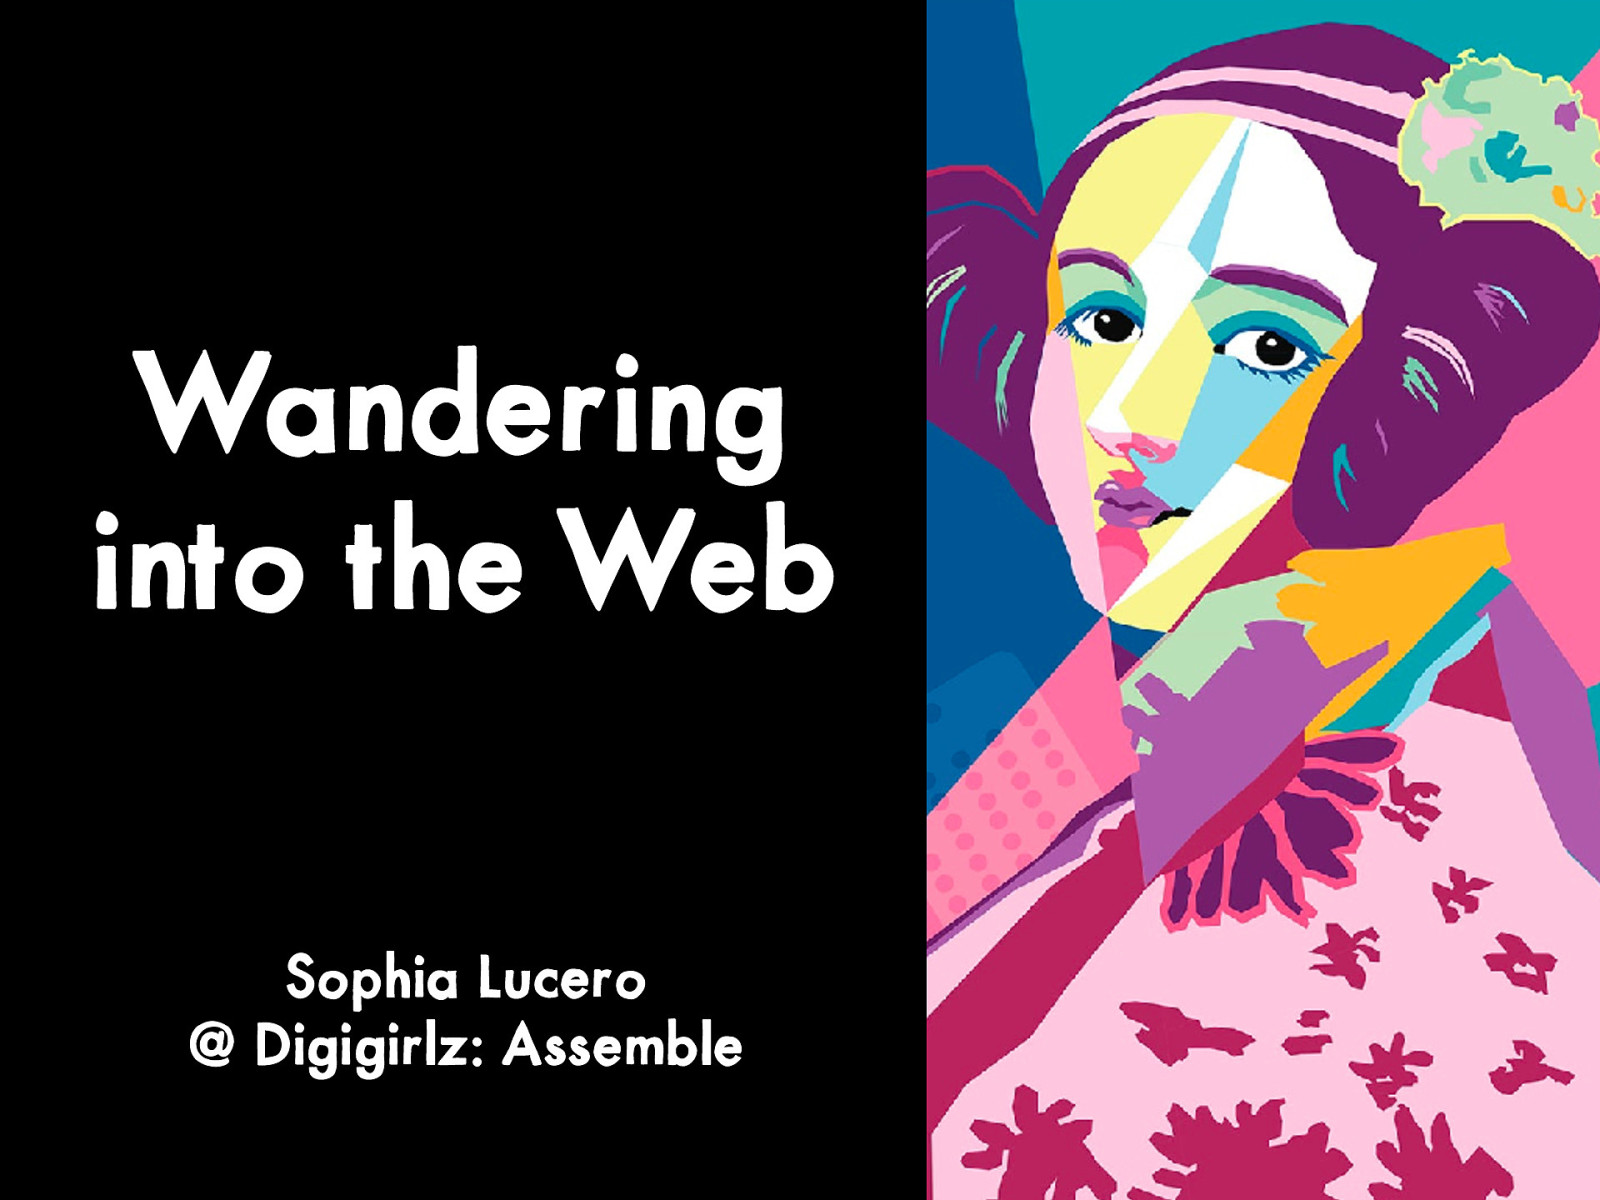 Wandering into the Web